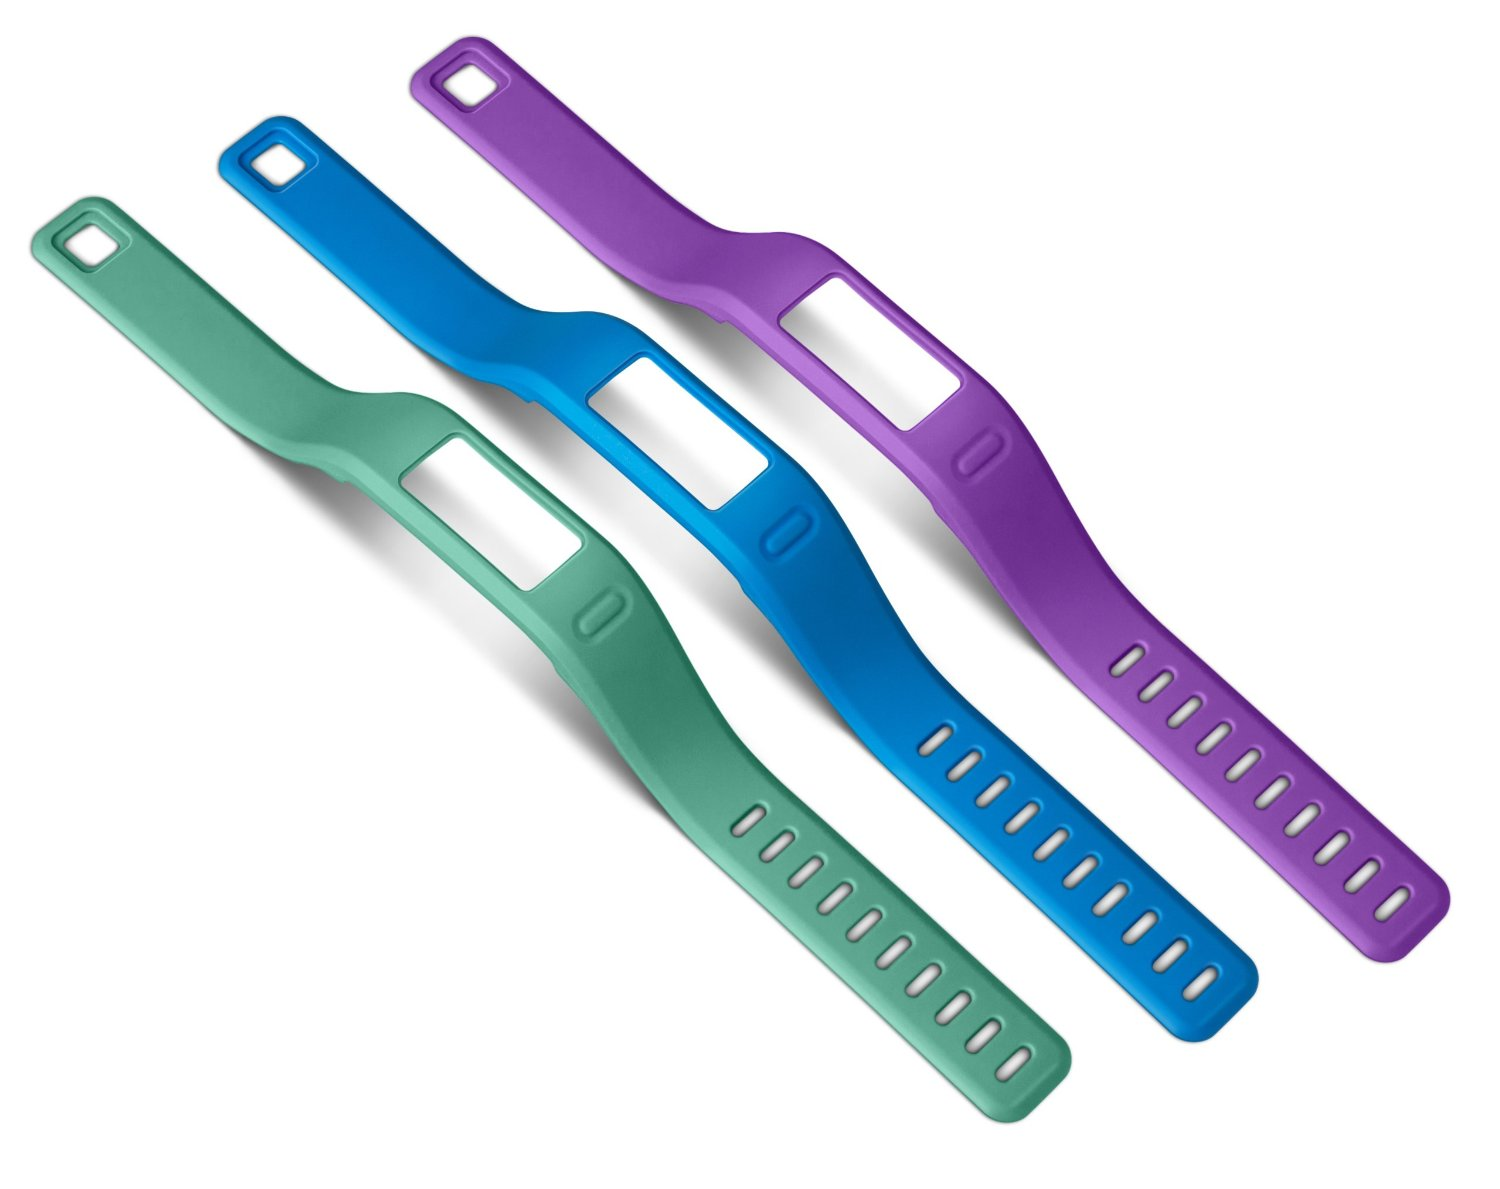 GENUINE Garmin Vivofit Small Wrist Bands Pack of 3 Purple/Teal/Blue 010-12149-01